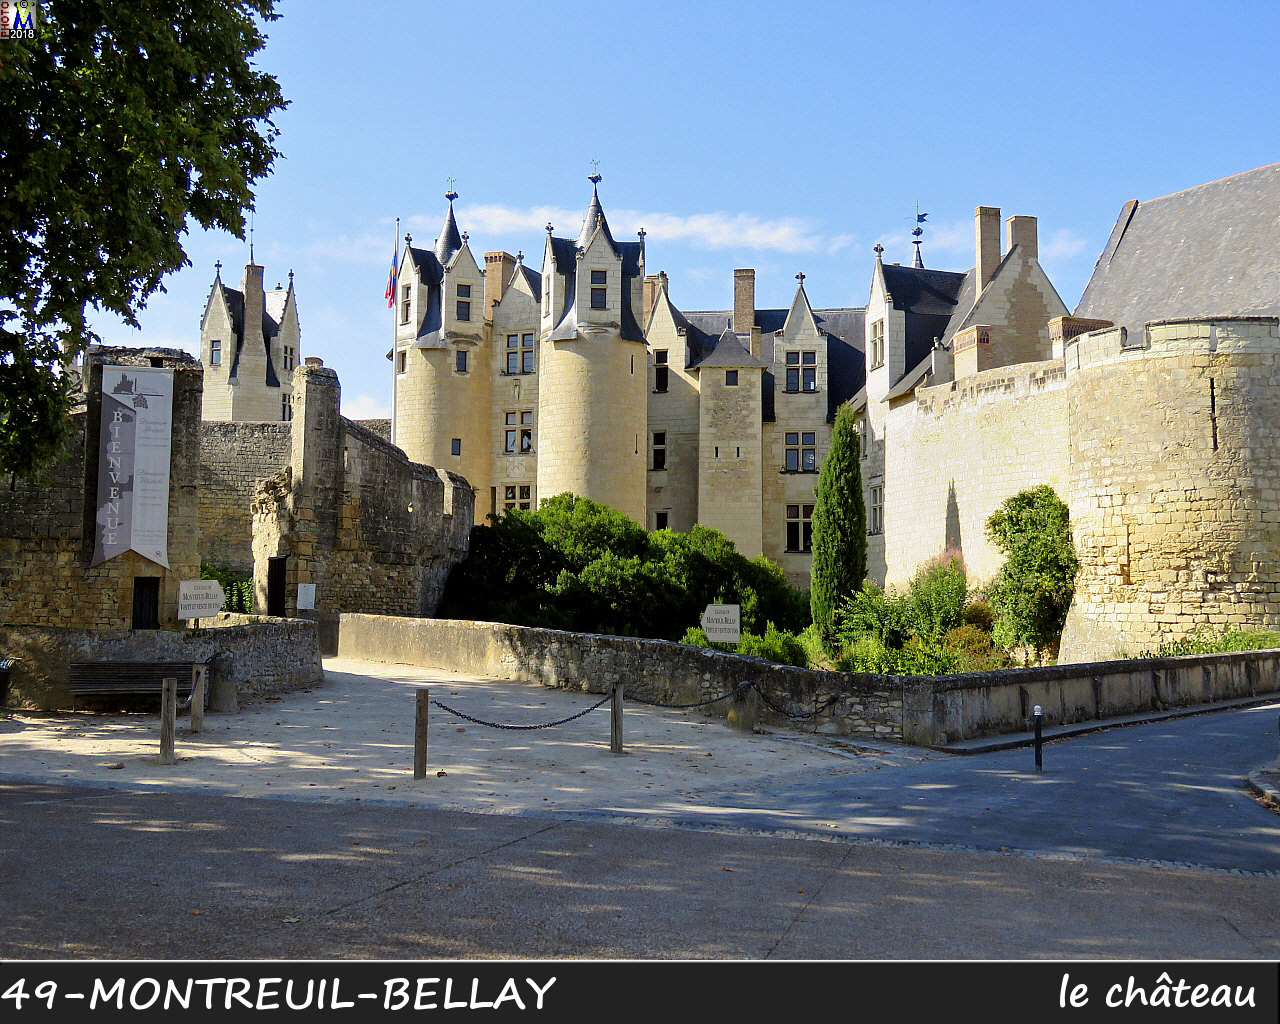 49MONTREUIL-BELLAY_chateau_1000.jpg